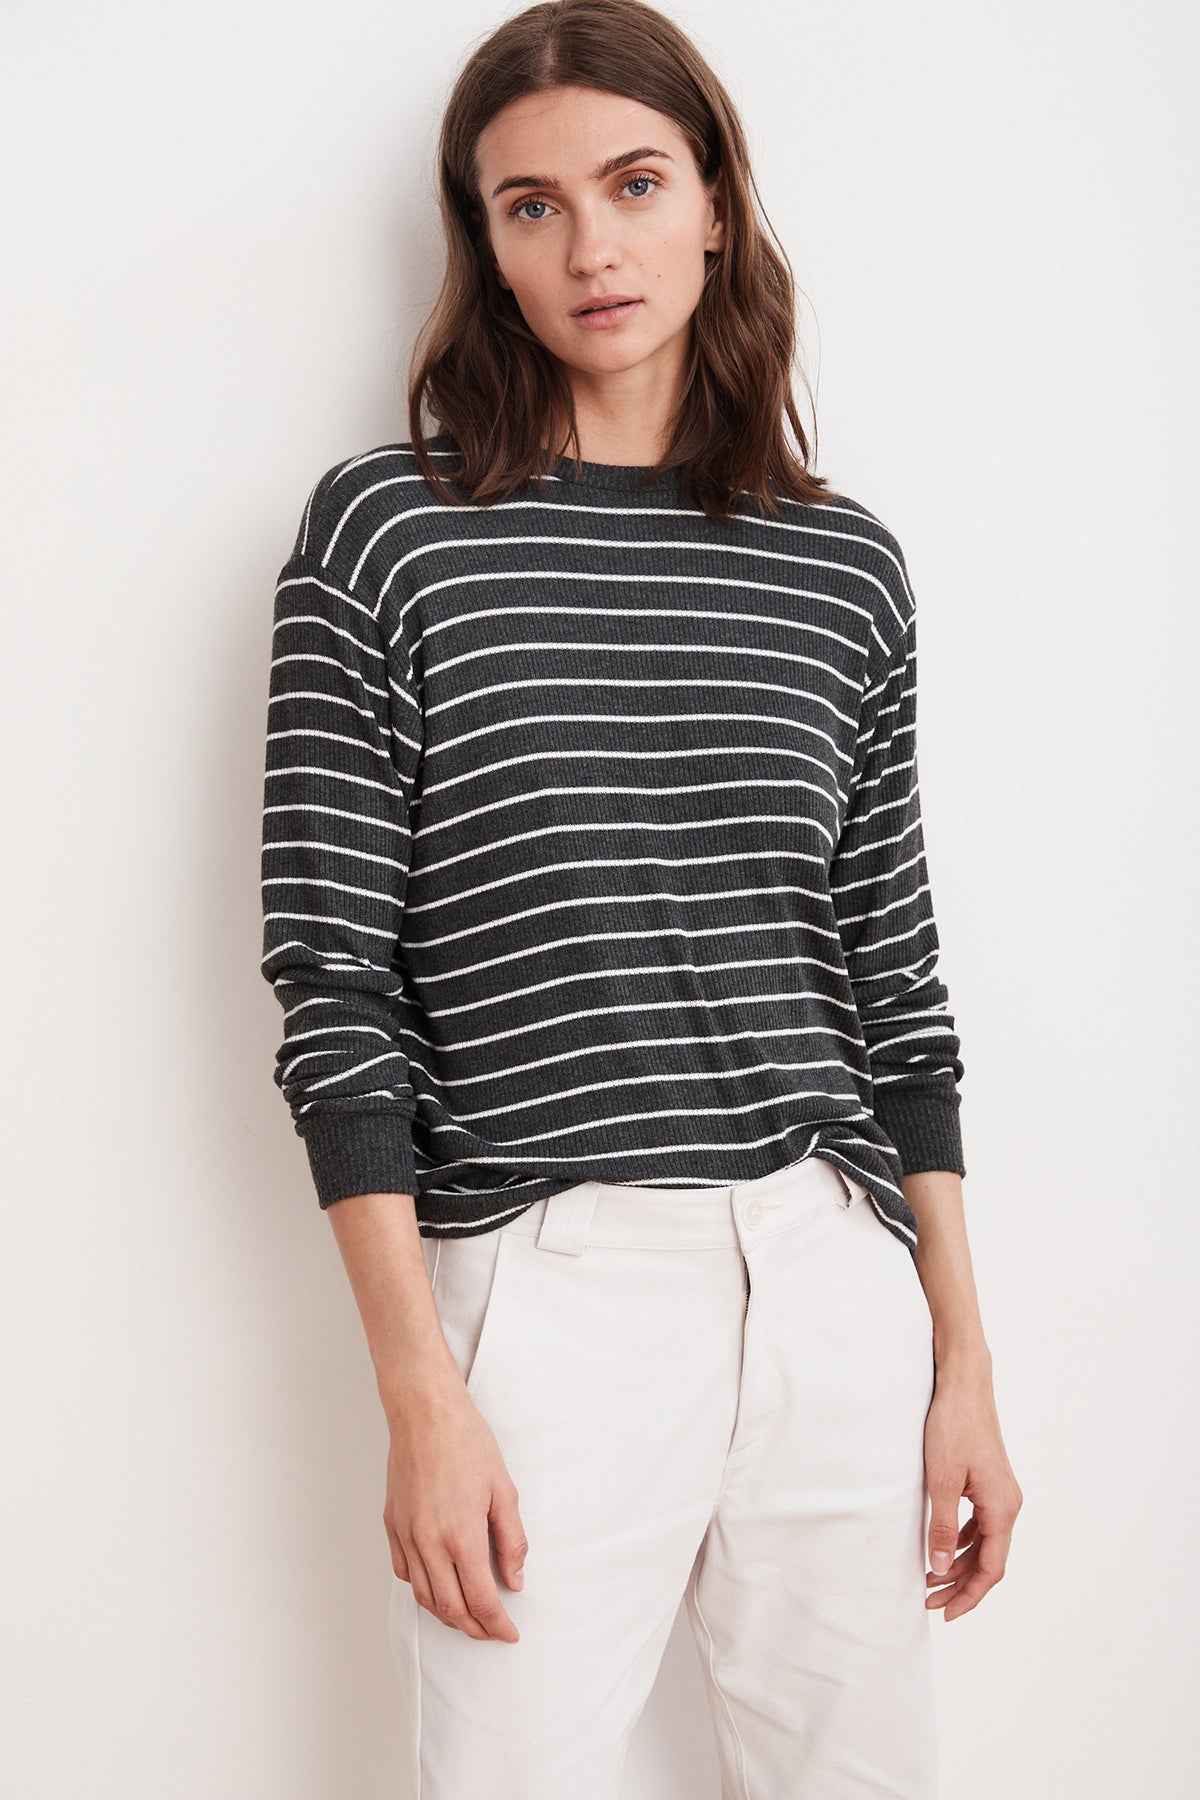 THETA RIBBED STRIPE CREW NECK TOP